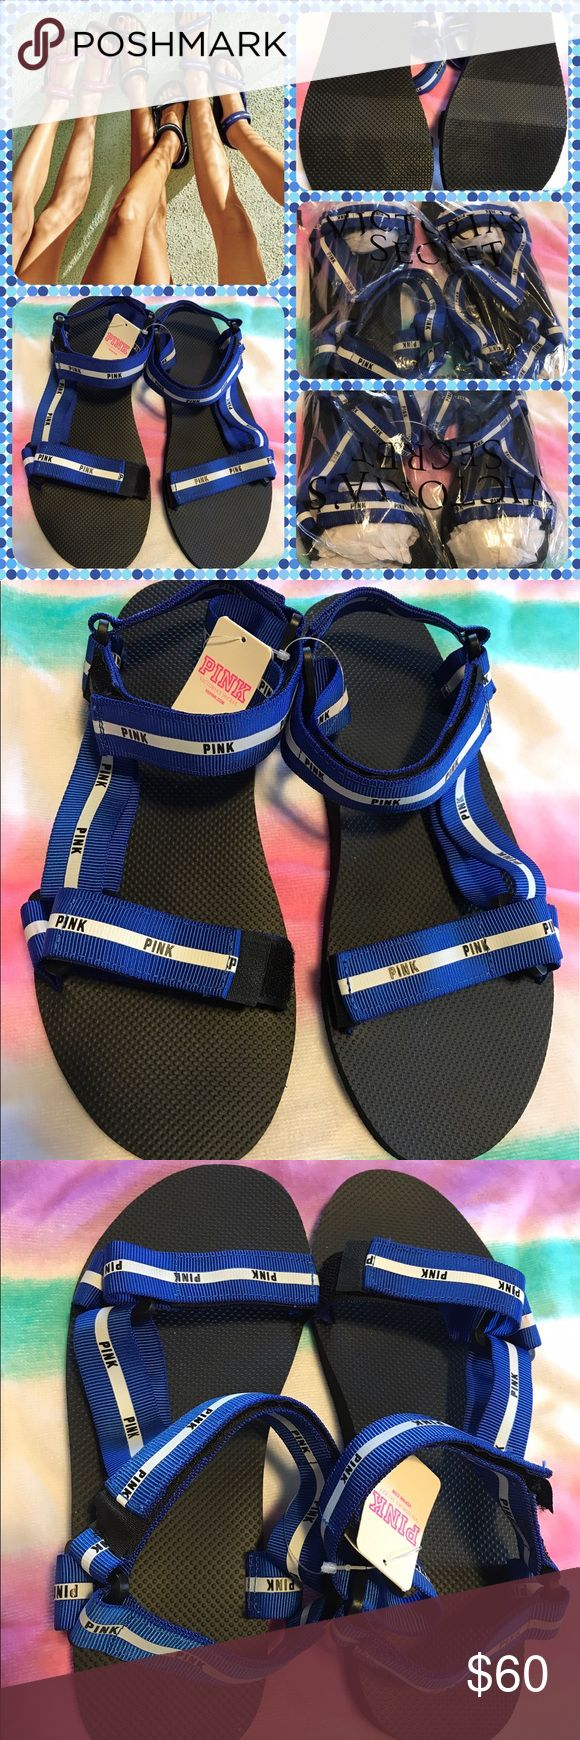 BNWT Pink Victoria'sSecret Promo Velcro Sandals BNWT Pink Victoria'sSecret Velcro Sandals.  Blue straps 2/ PINK in white letters, adjustable straps at ankles and across toes.  Size medium-7/8. No trades.  Will price drop PINK Victoria's Secret Shoes Sandals